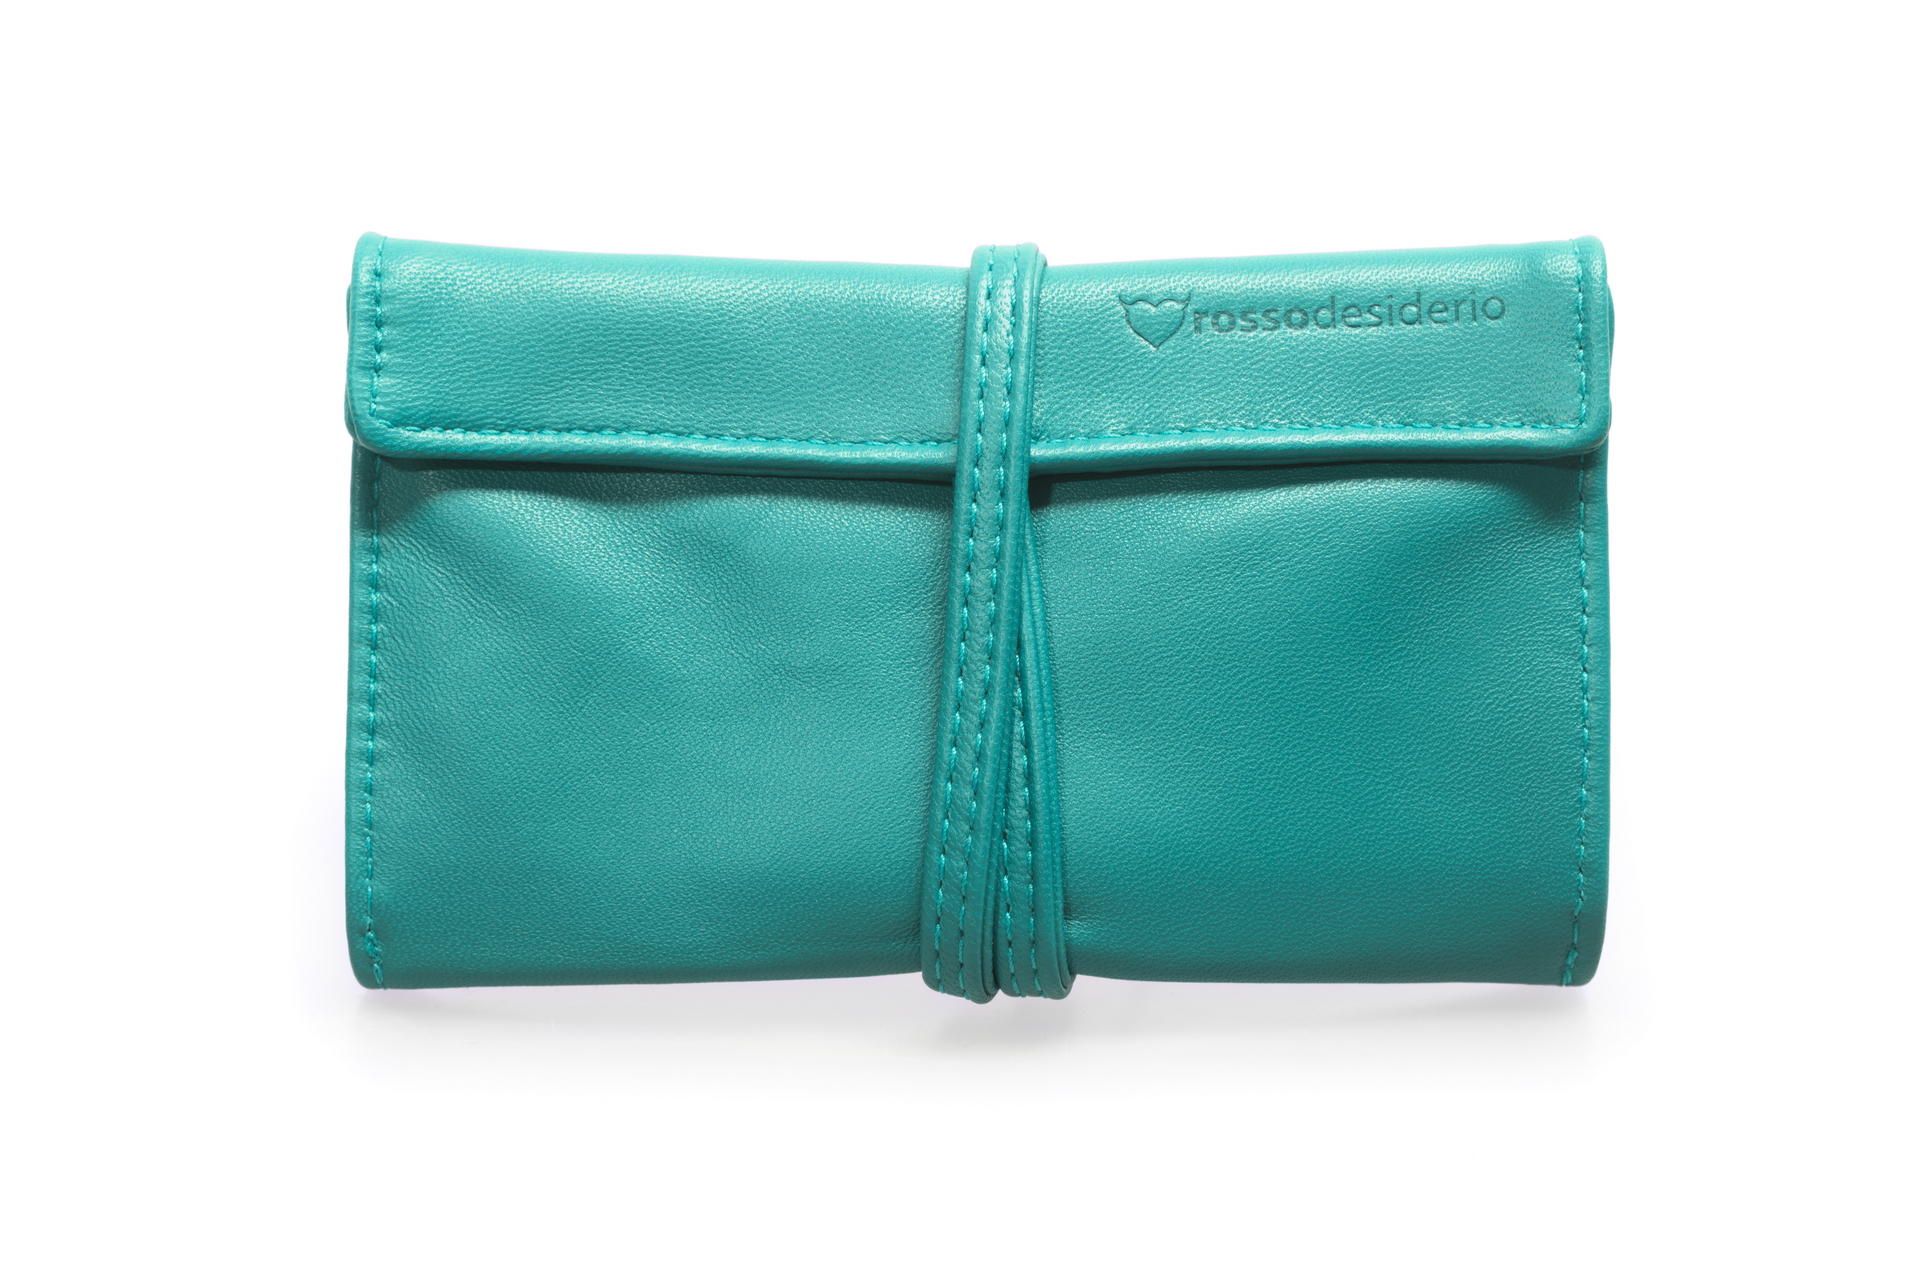 Real leather Tiffany tobacco pouch